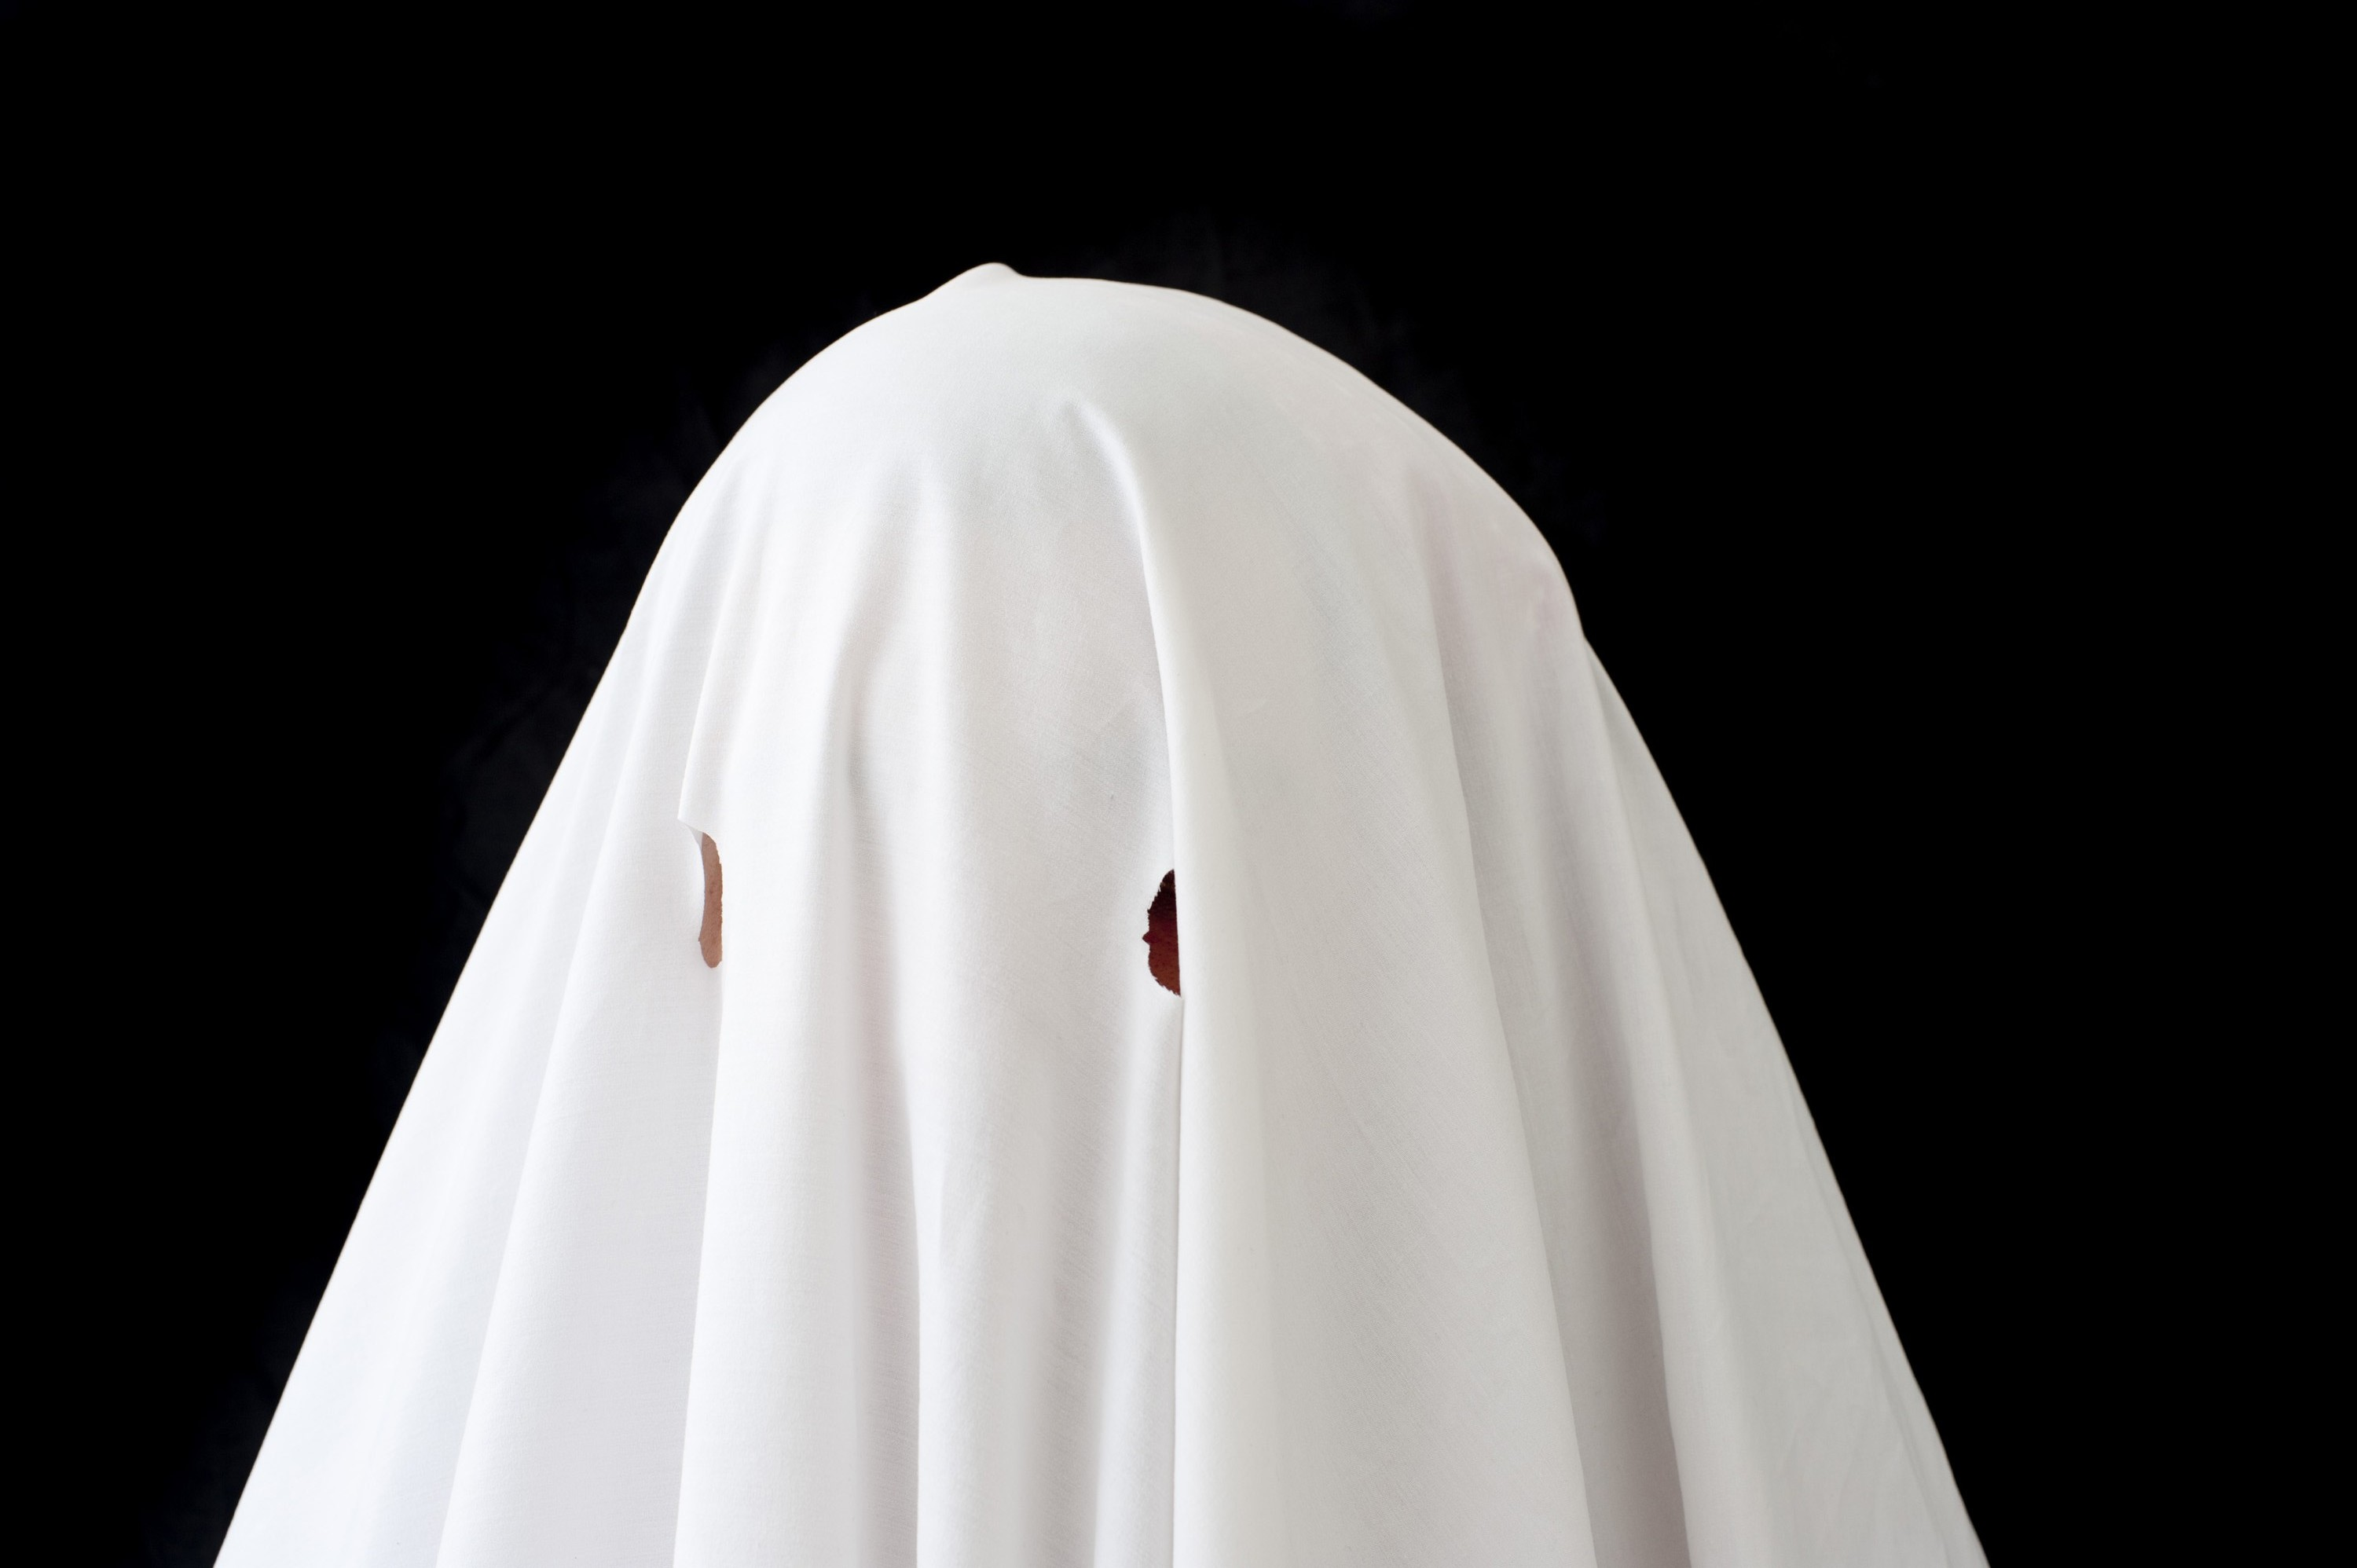 Image of ghost costume - CreepyHalloweenImages